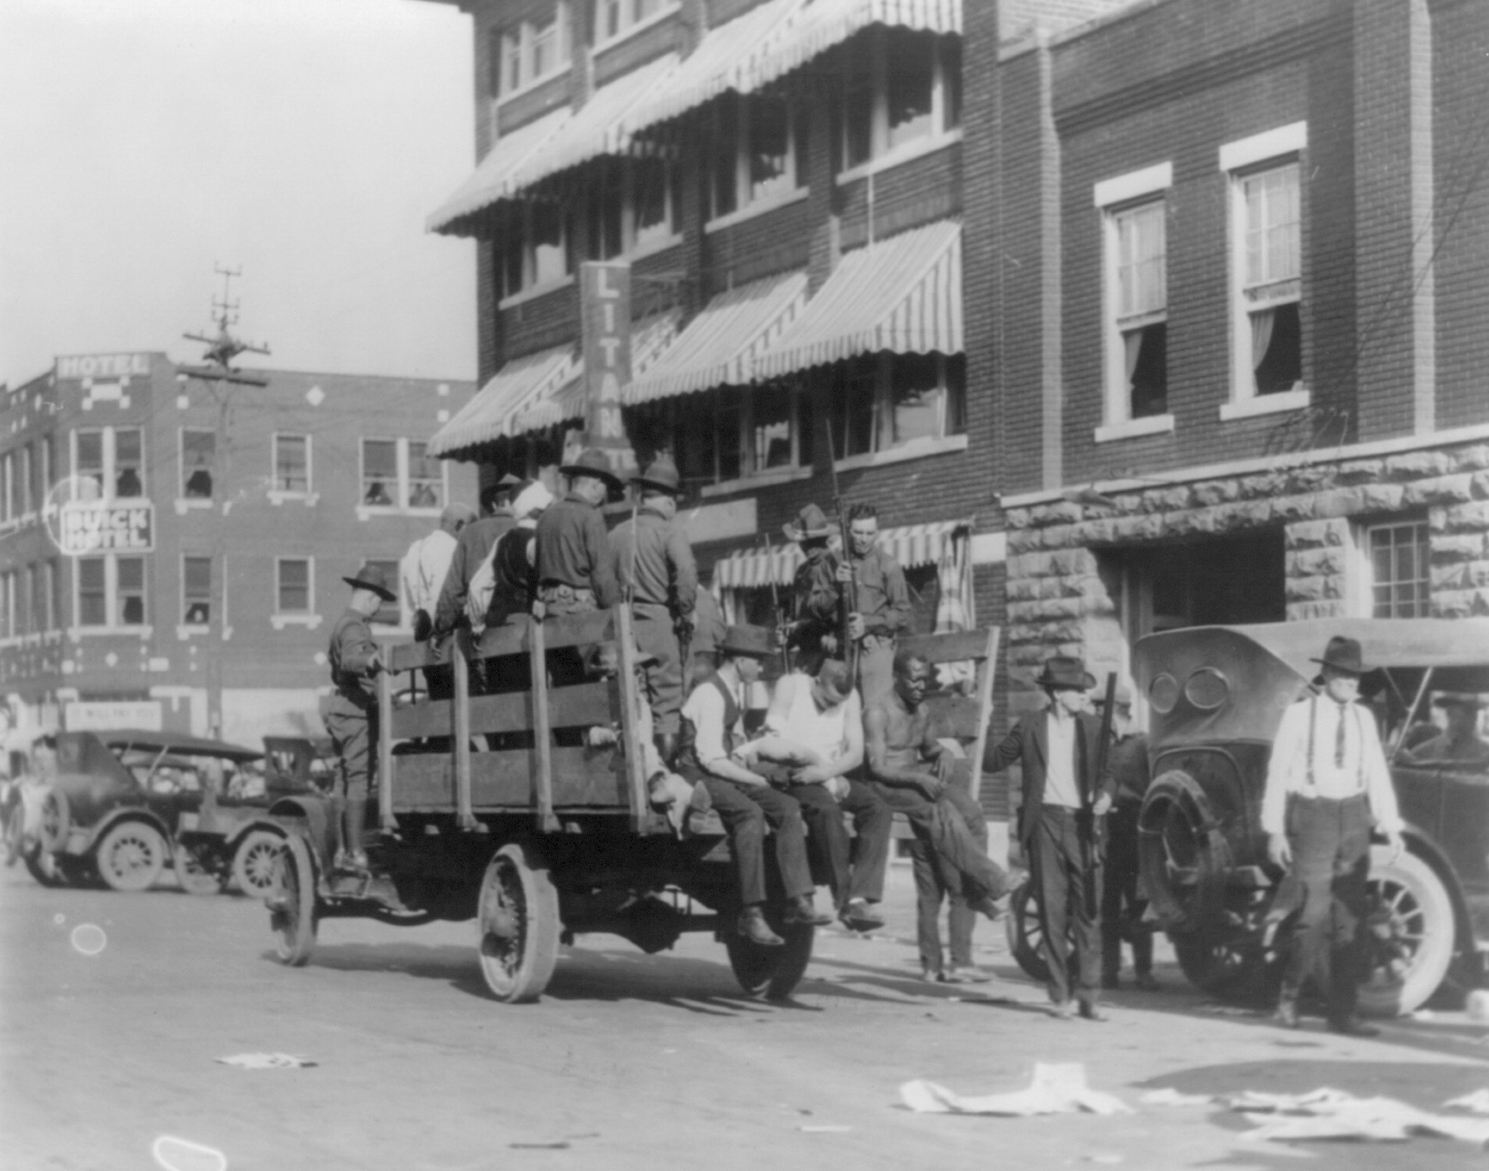 A truck near Litan Hotel carries soldiers and African Americans during Tulsa, Okla., race riot in 1921.